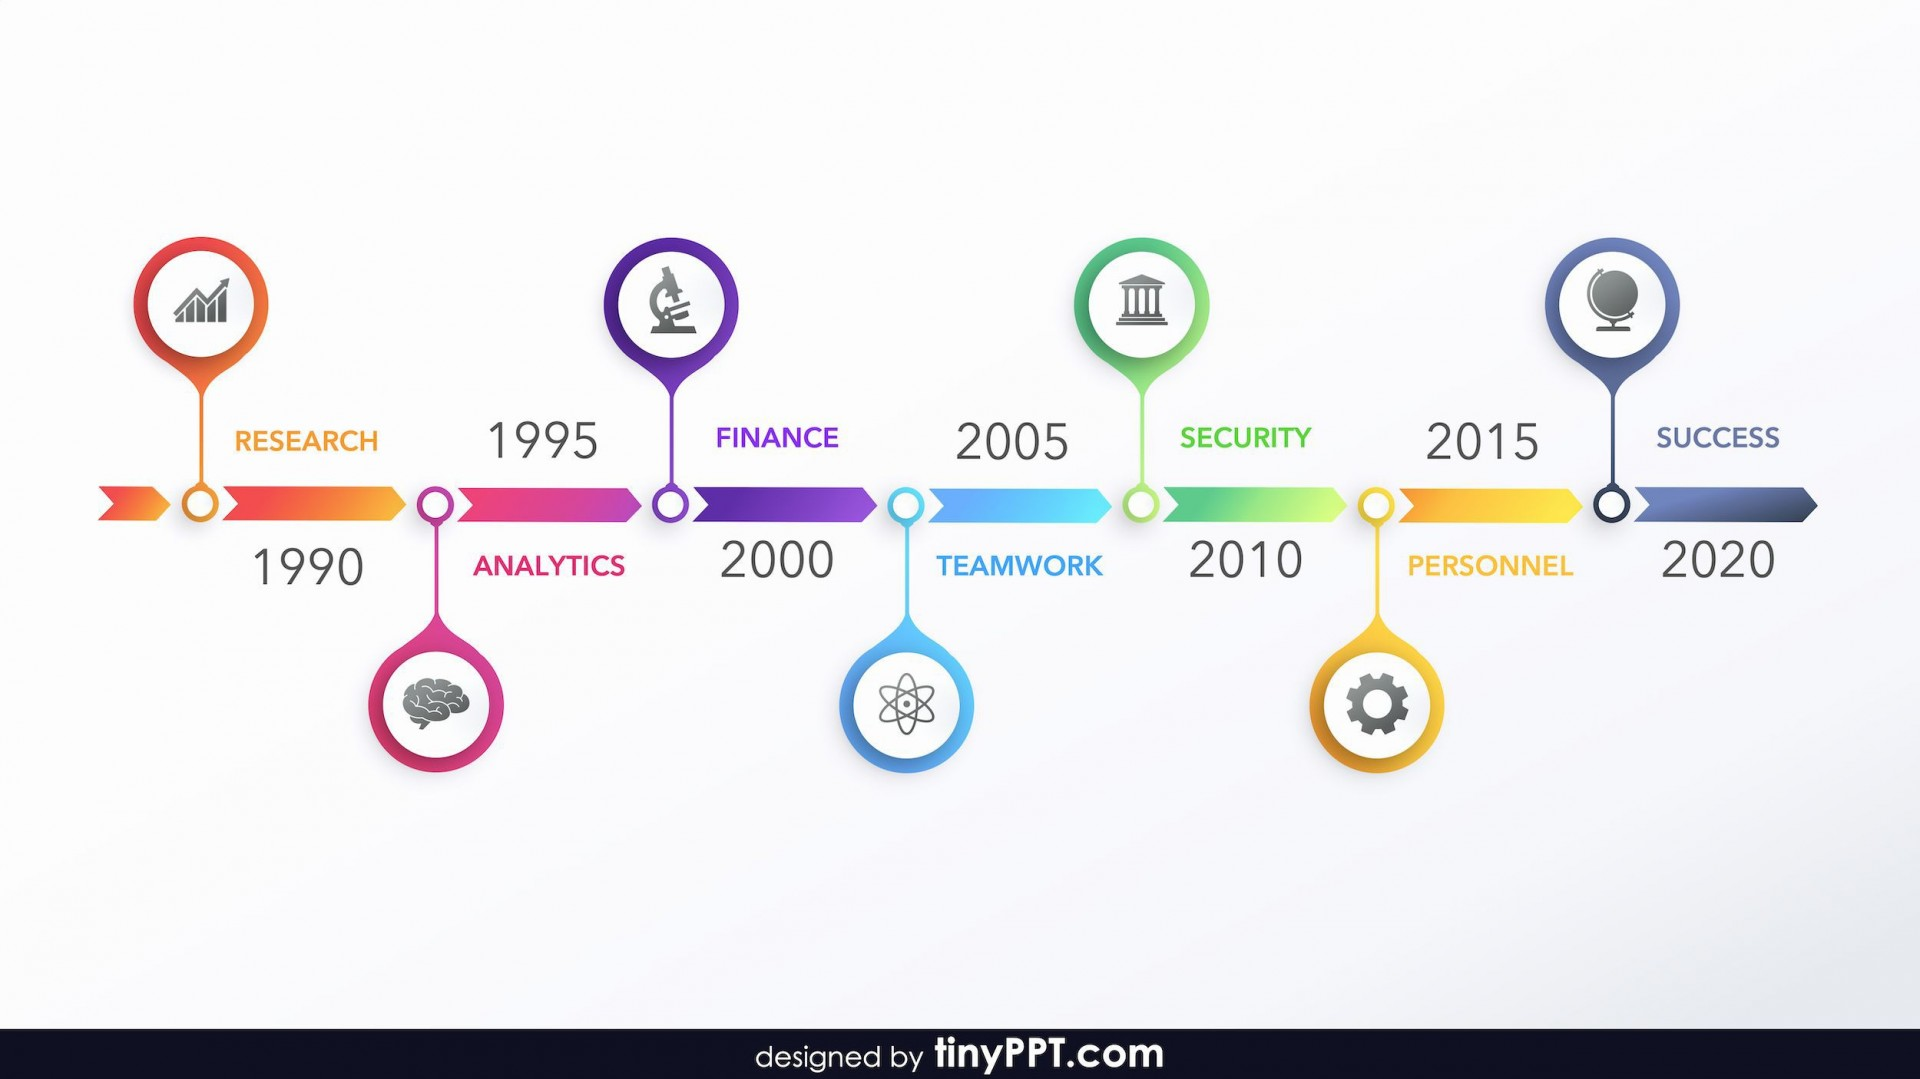 000 Stunning Powerpoint Timeline Template Free Download High Definition  Project History1920